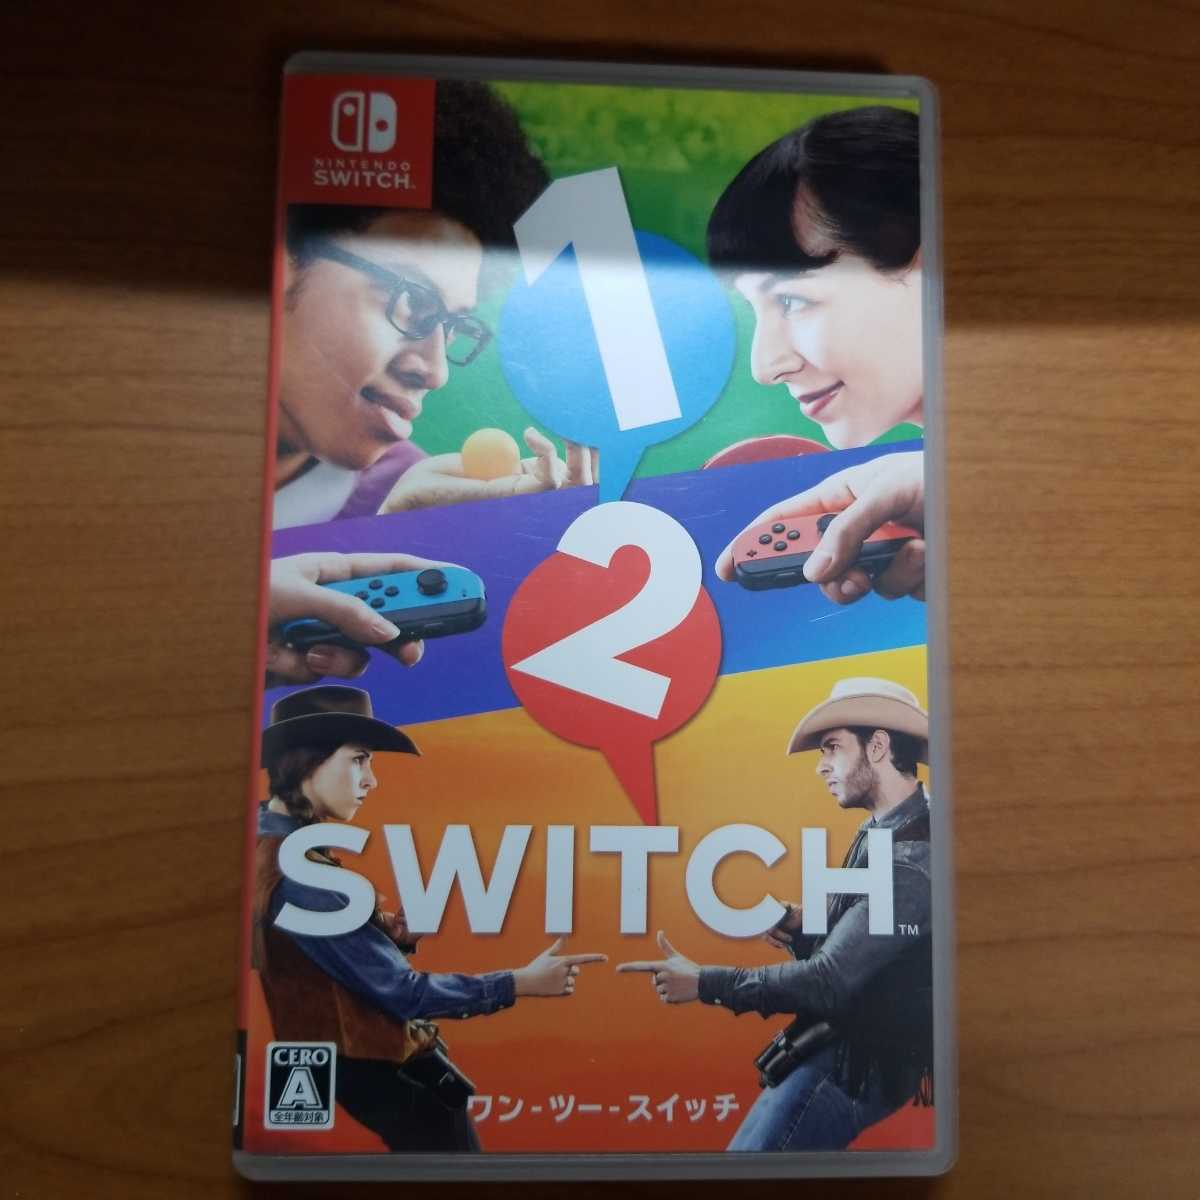 Switch ワンツースイッチ Switch 1-2-Switch Switch ワン・ツー・スイッチ ニンテンドースイッチ ソフト 送料無料